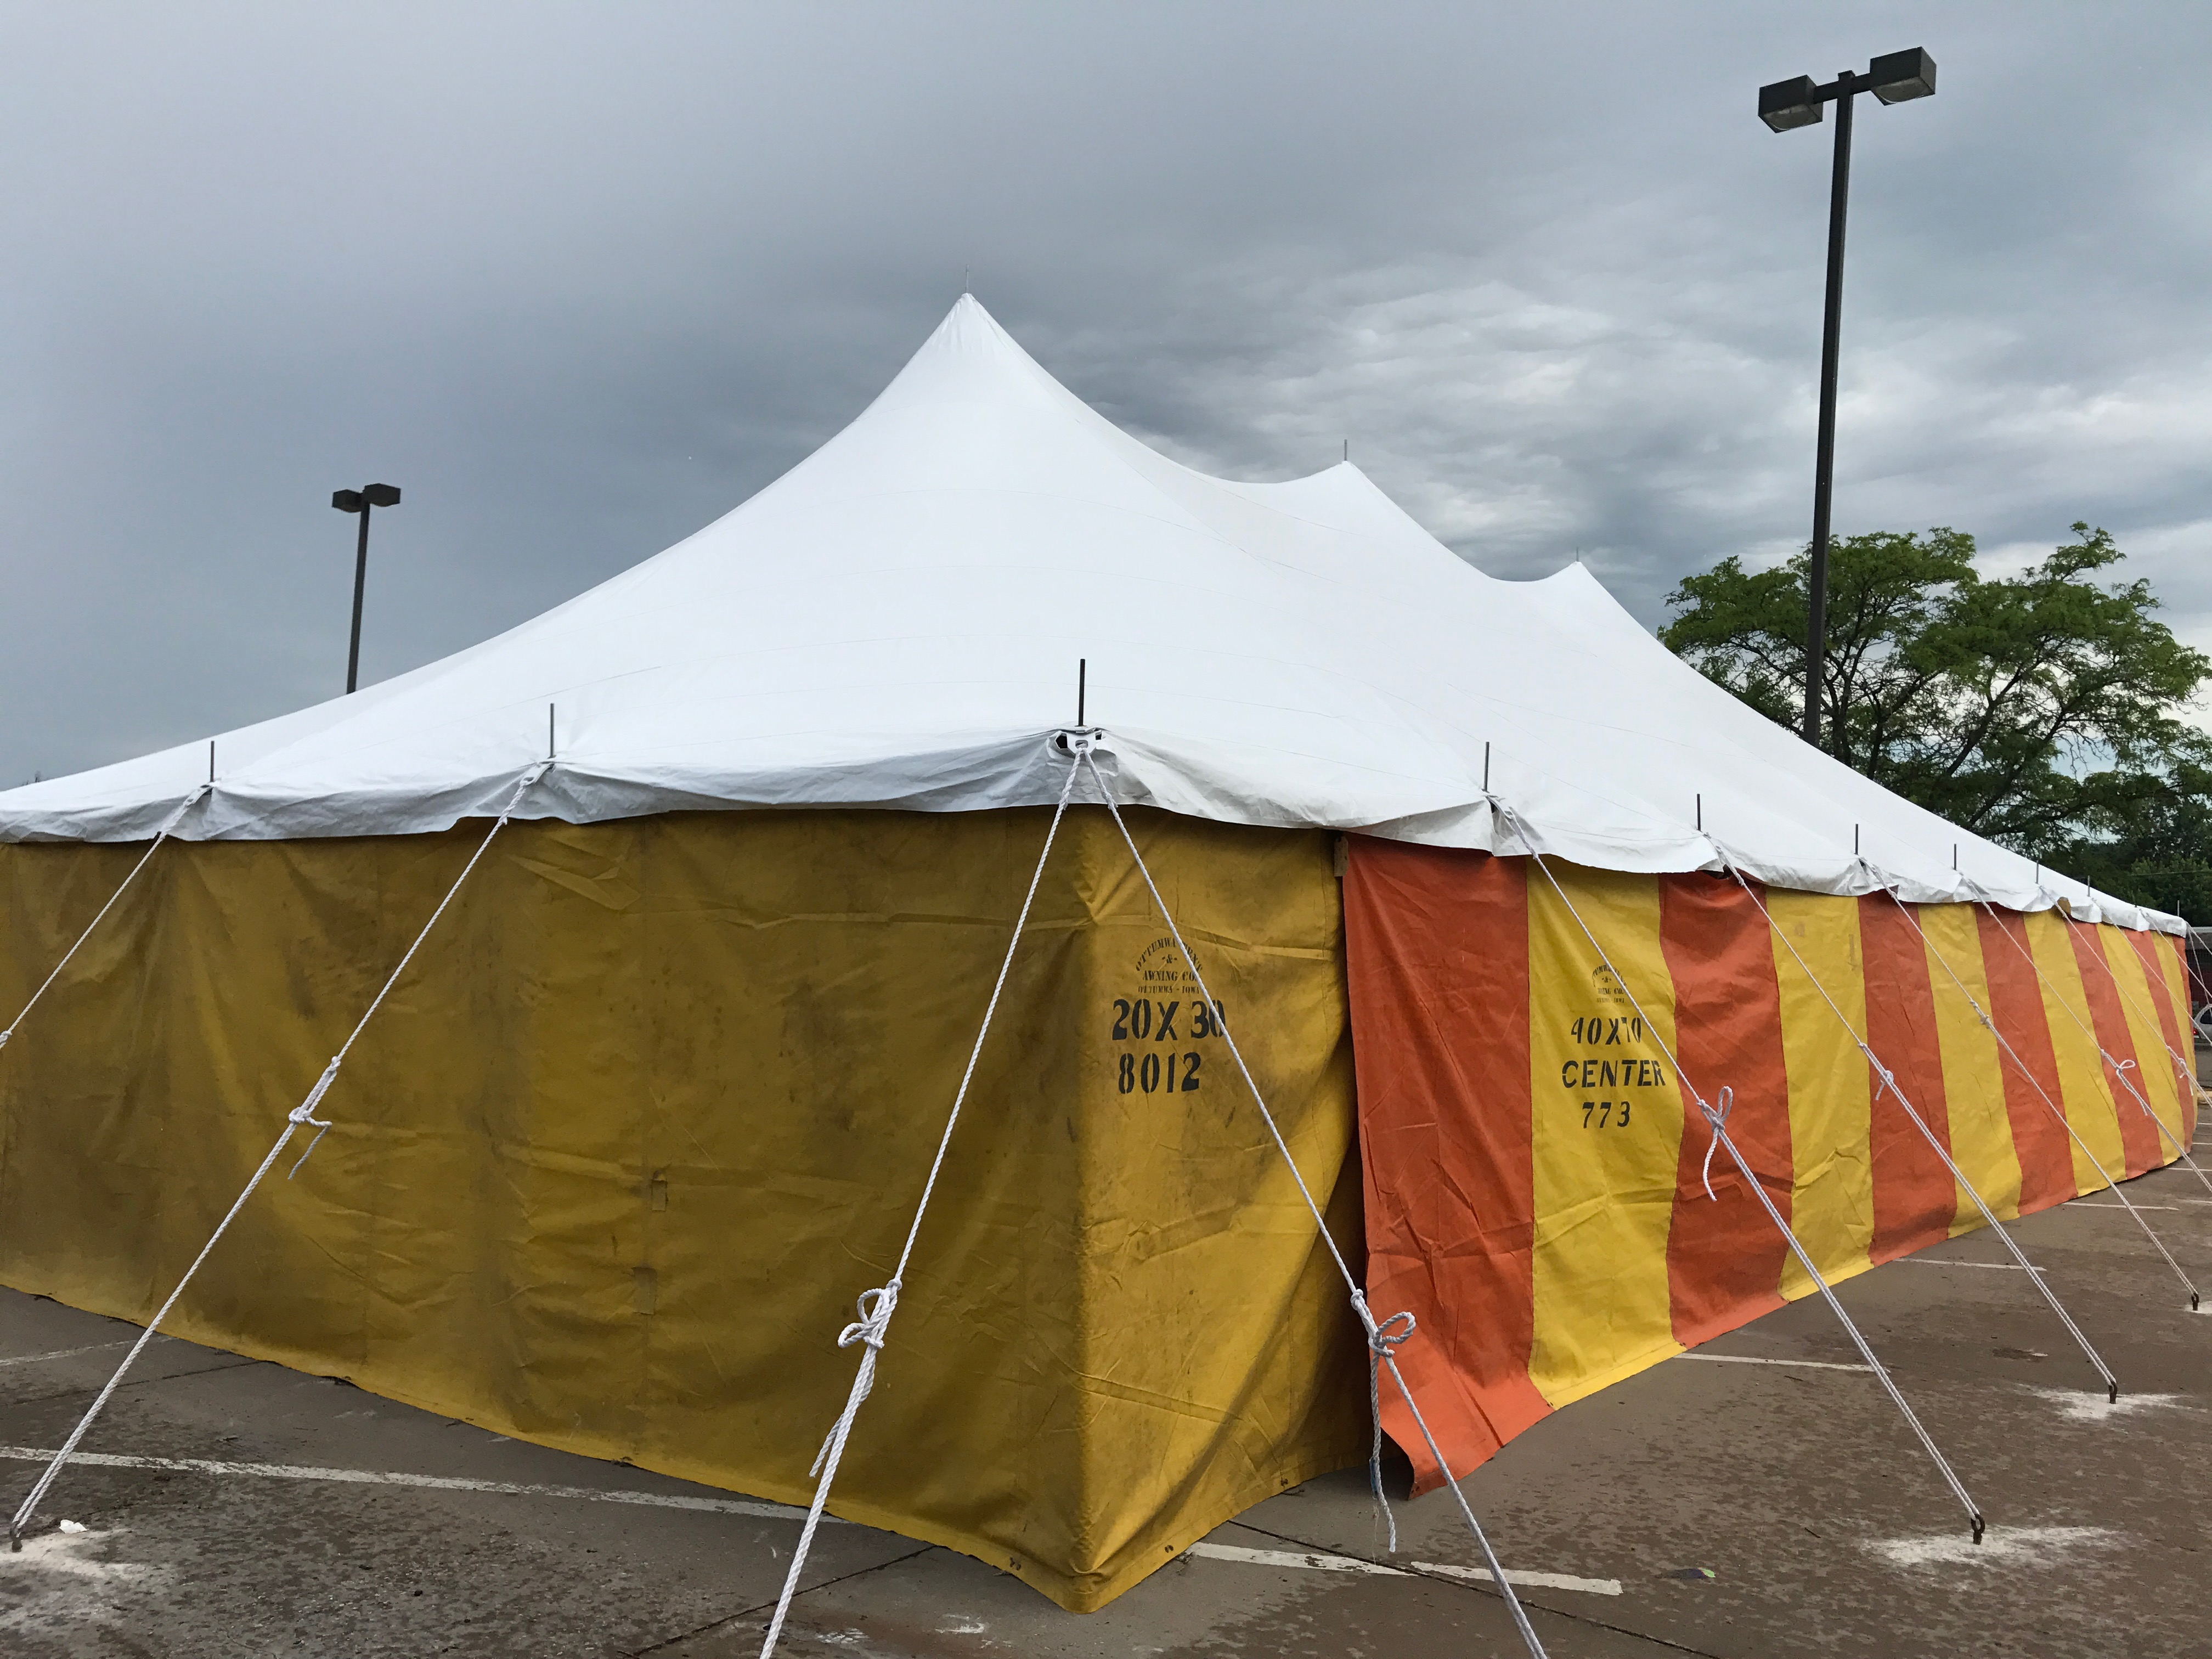 30' x 60' rope and pole tent at Hy-Vee 1823 E Kimberly Rd in Davenport, Iowa with Yellow and Orange side walls